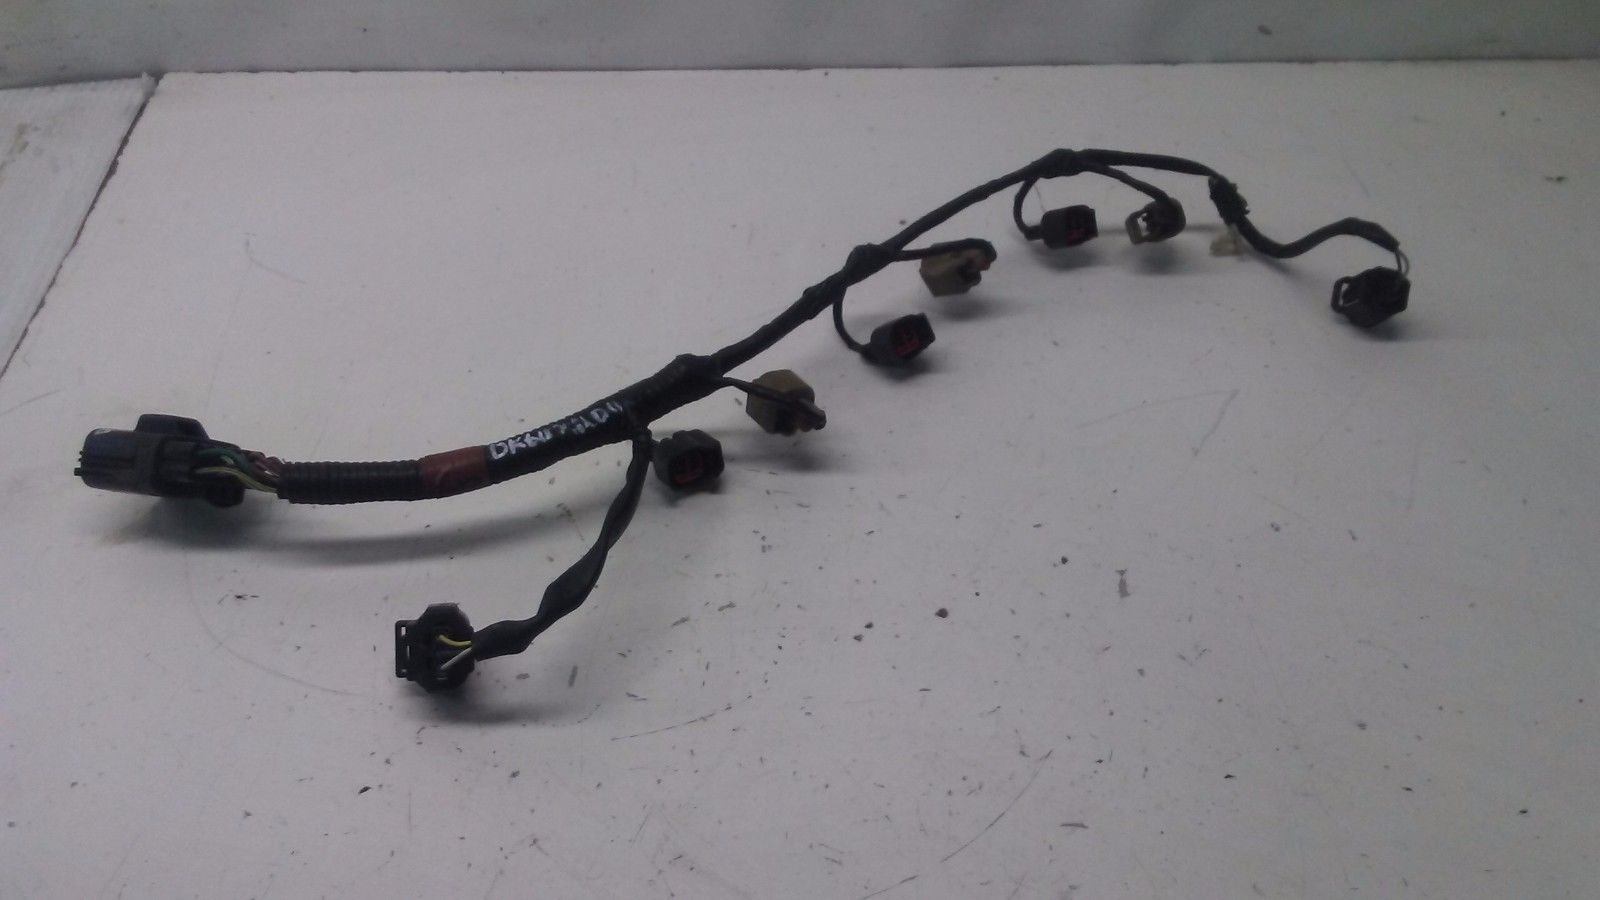 DK607200 2003 JAGUAR X TYPE FUEL INJECTOR RAIL WIRE HARNESS WIRING HARNESS  OEM 2002 2003 2004